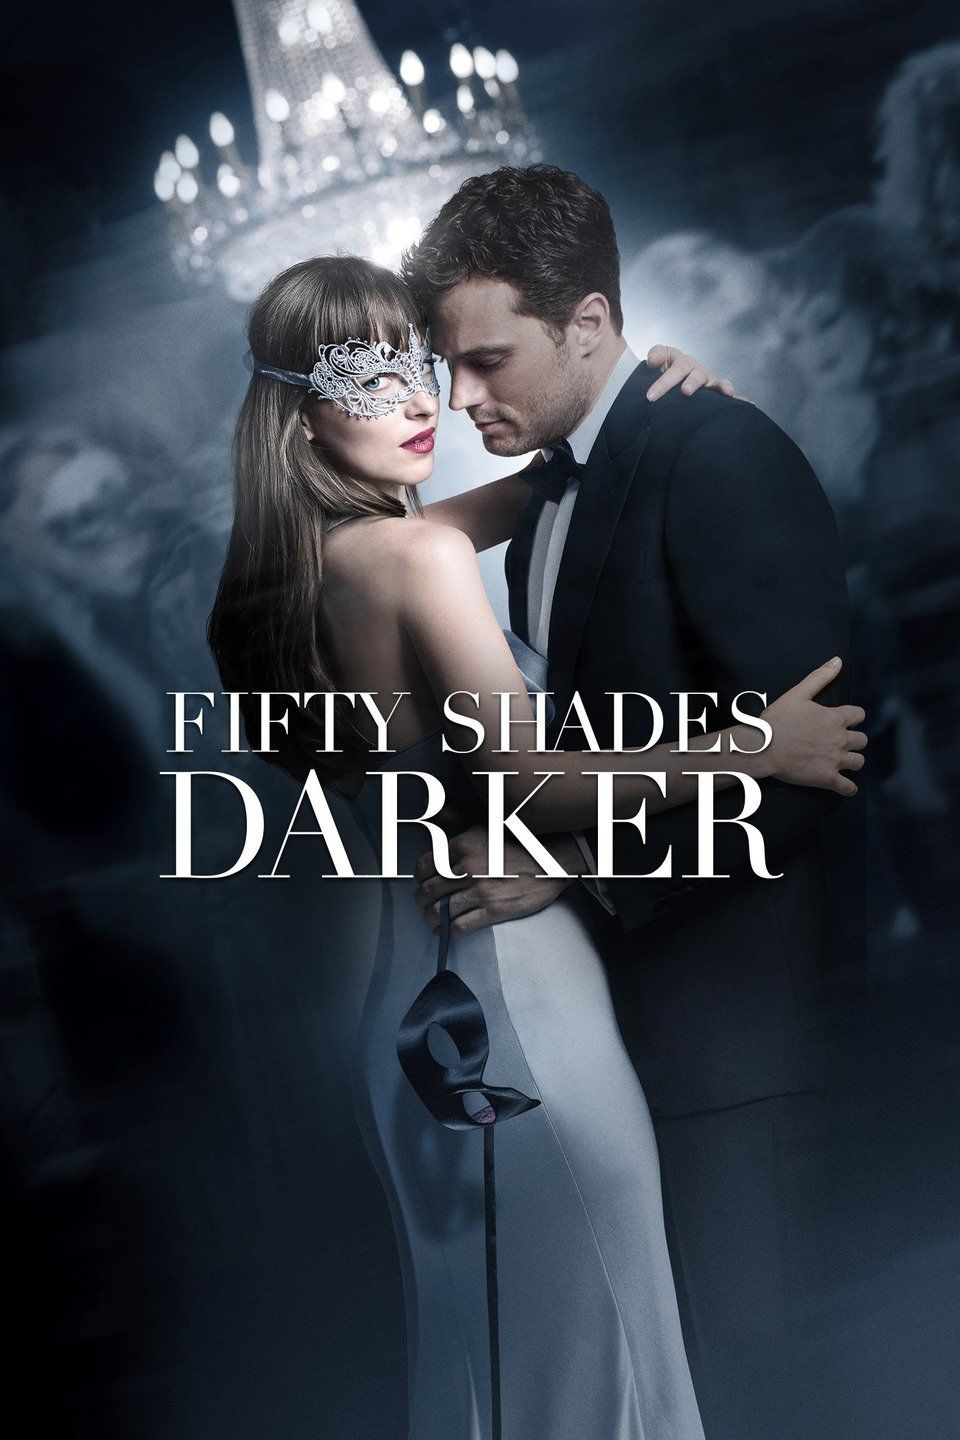 fifty shades of darker full movie 2015 watch online free